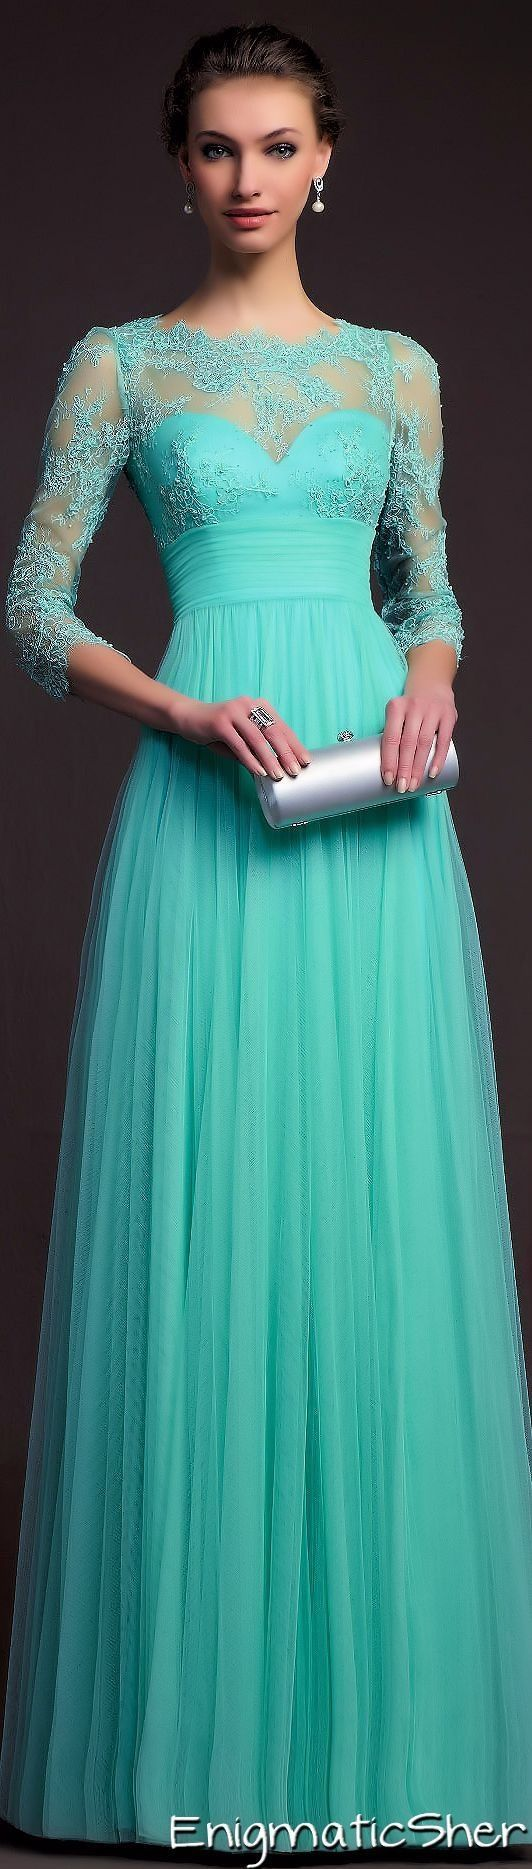 18 best Freaky fashion images on Pinterest | Gown dress, Casual ...